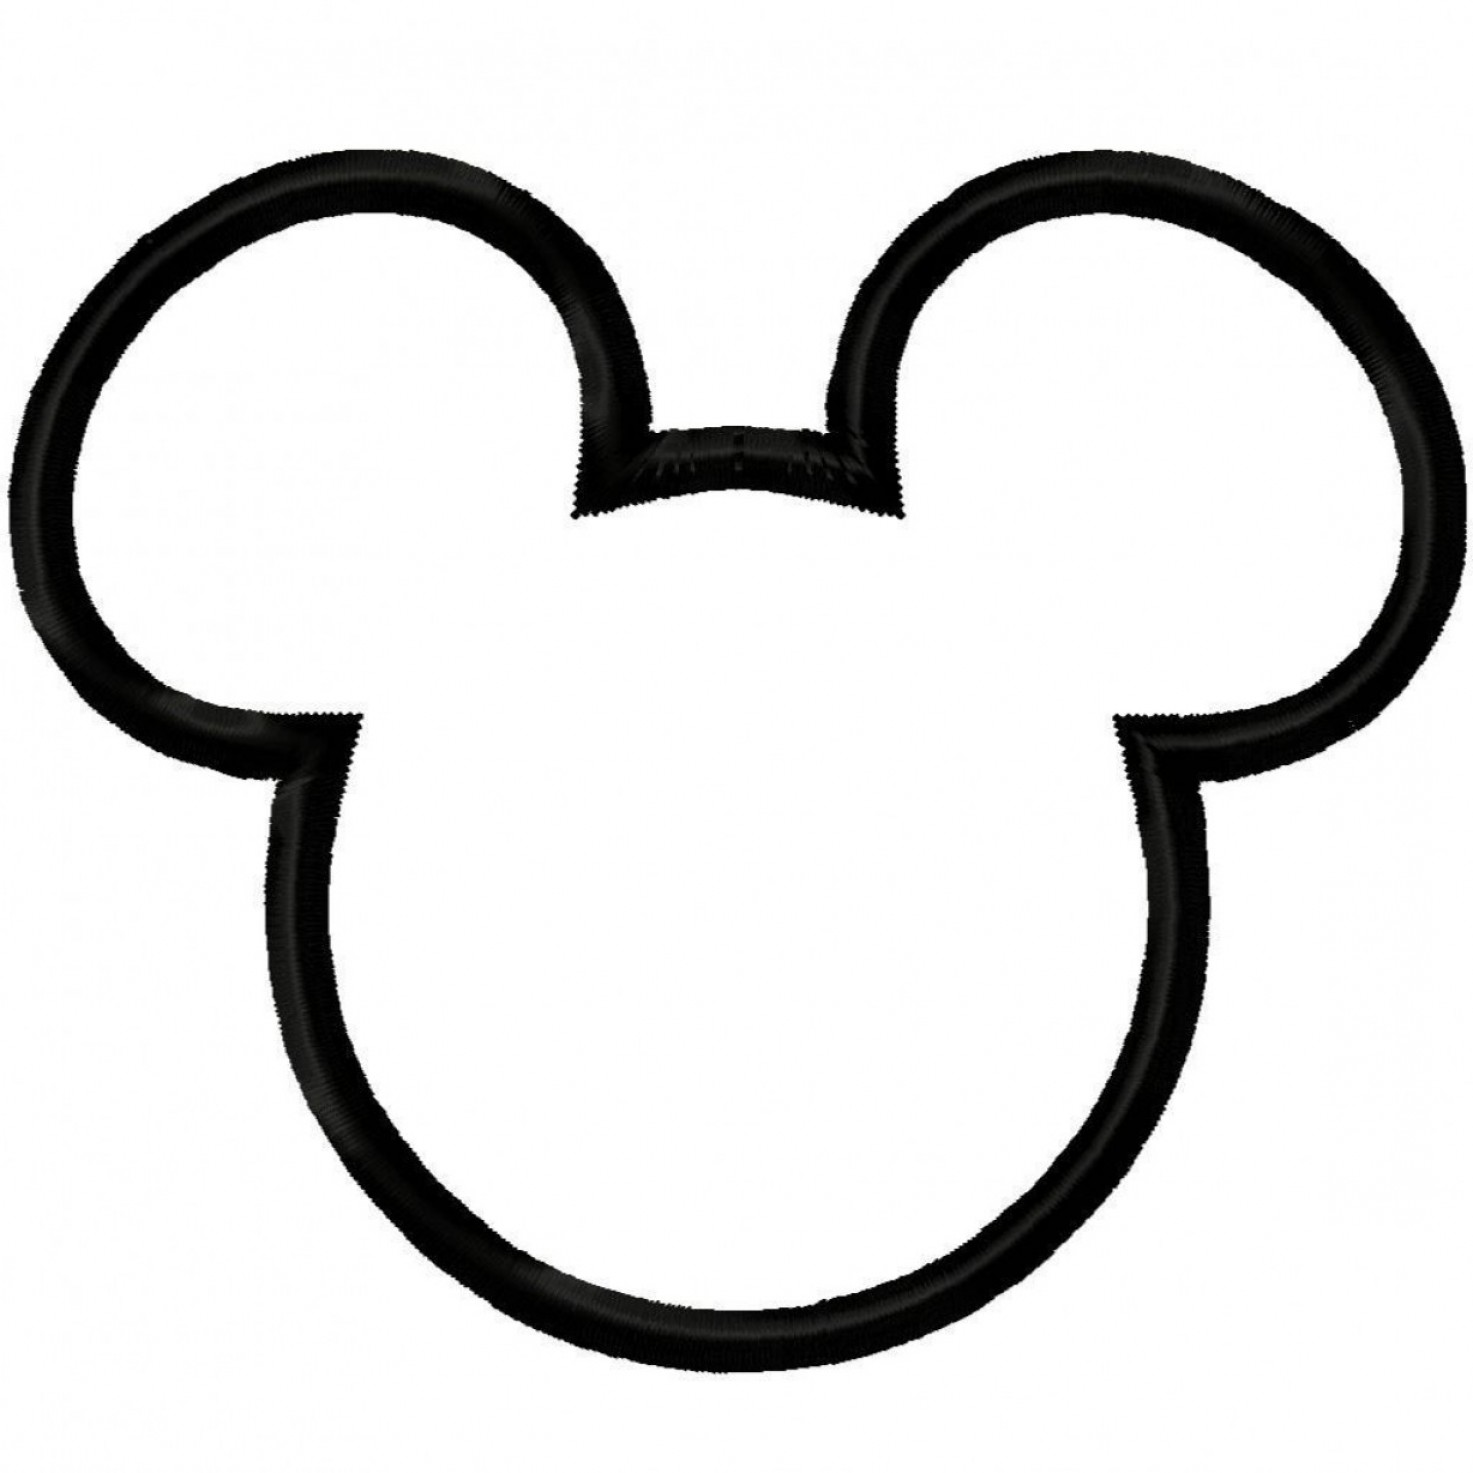 mickey mouse ears clipart black and white createmepink rh createmepink com